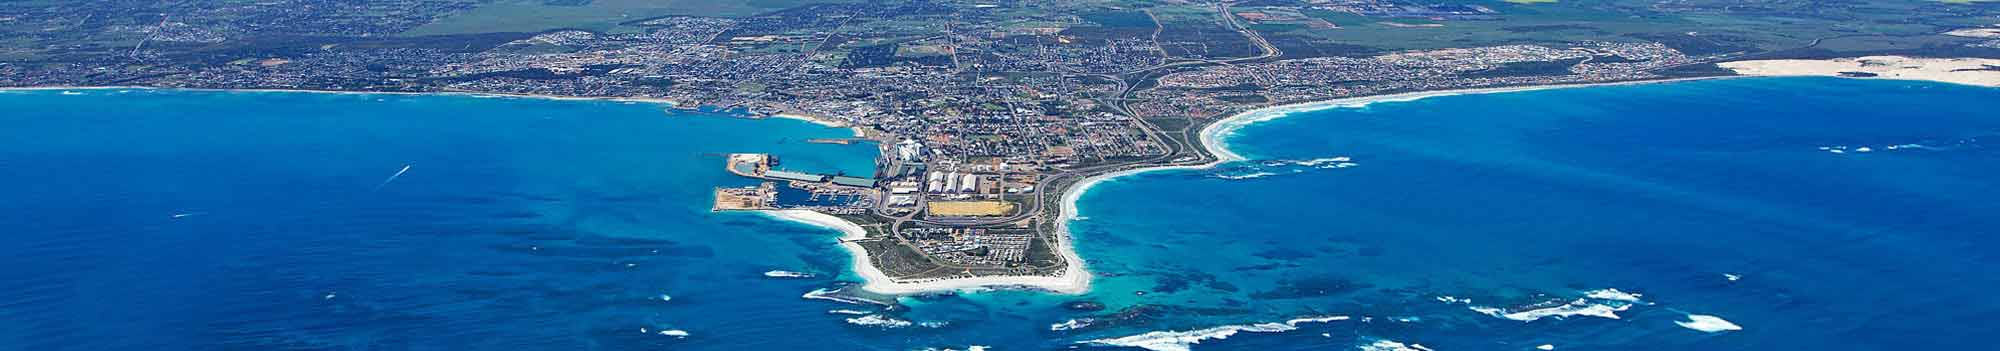 Aerial Image of the city of Geraldton Western Australia